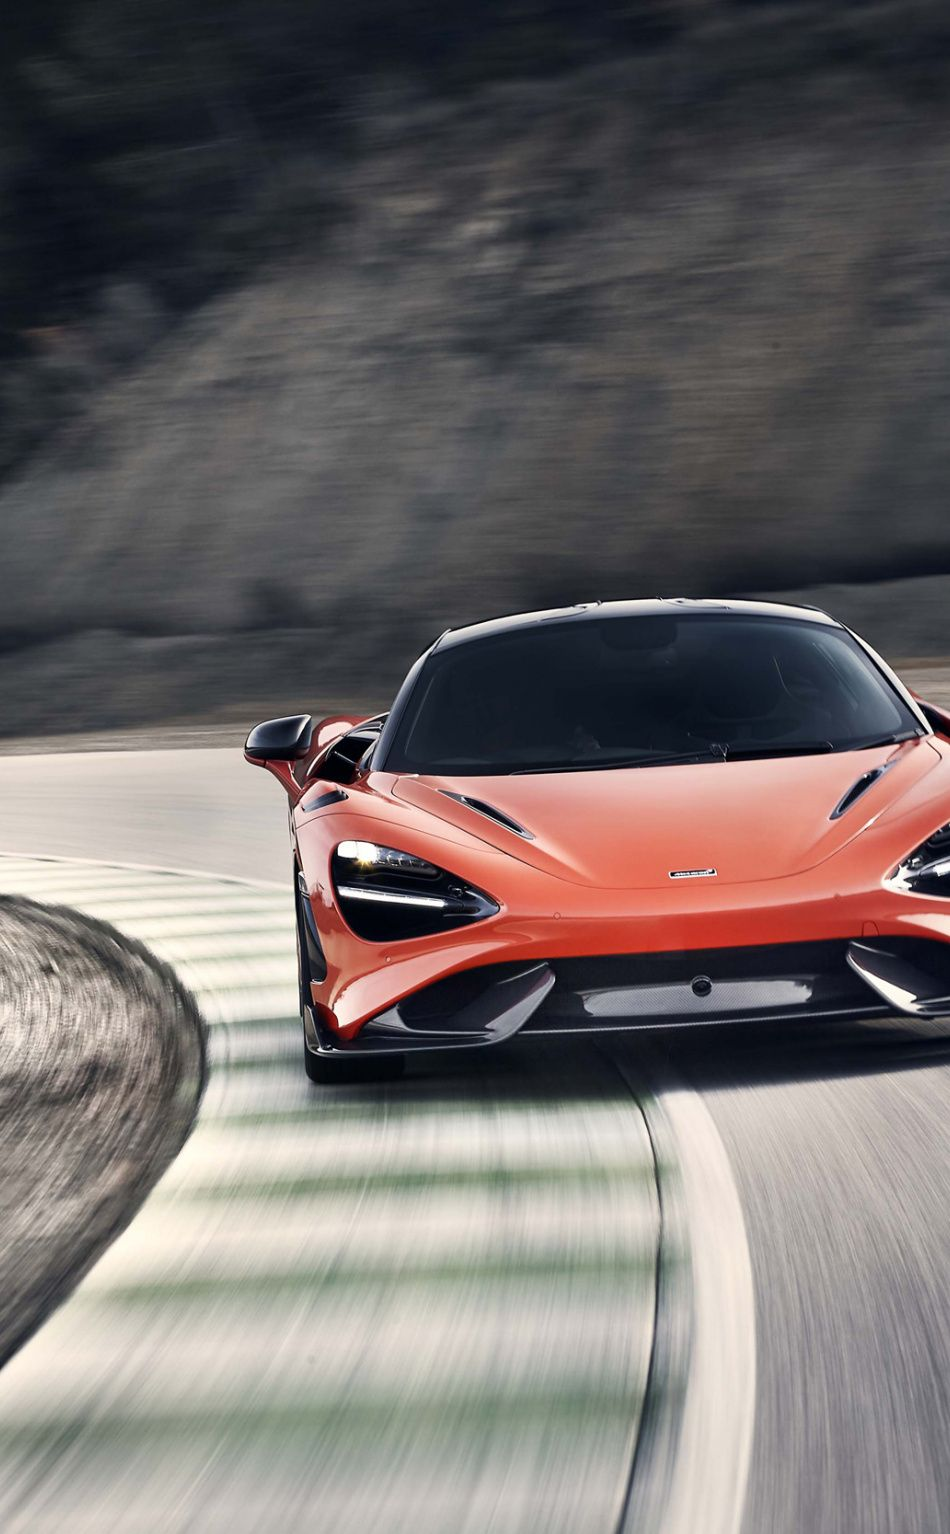 950x1534 On Road Mclaren 765lt Sportcar Wallpaper In 2020 Mclaren Car Wallpapers Cool Car Drawings